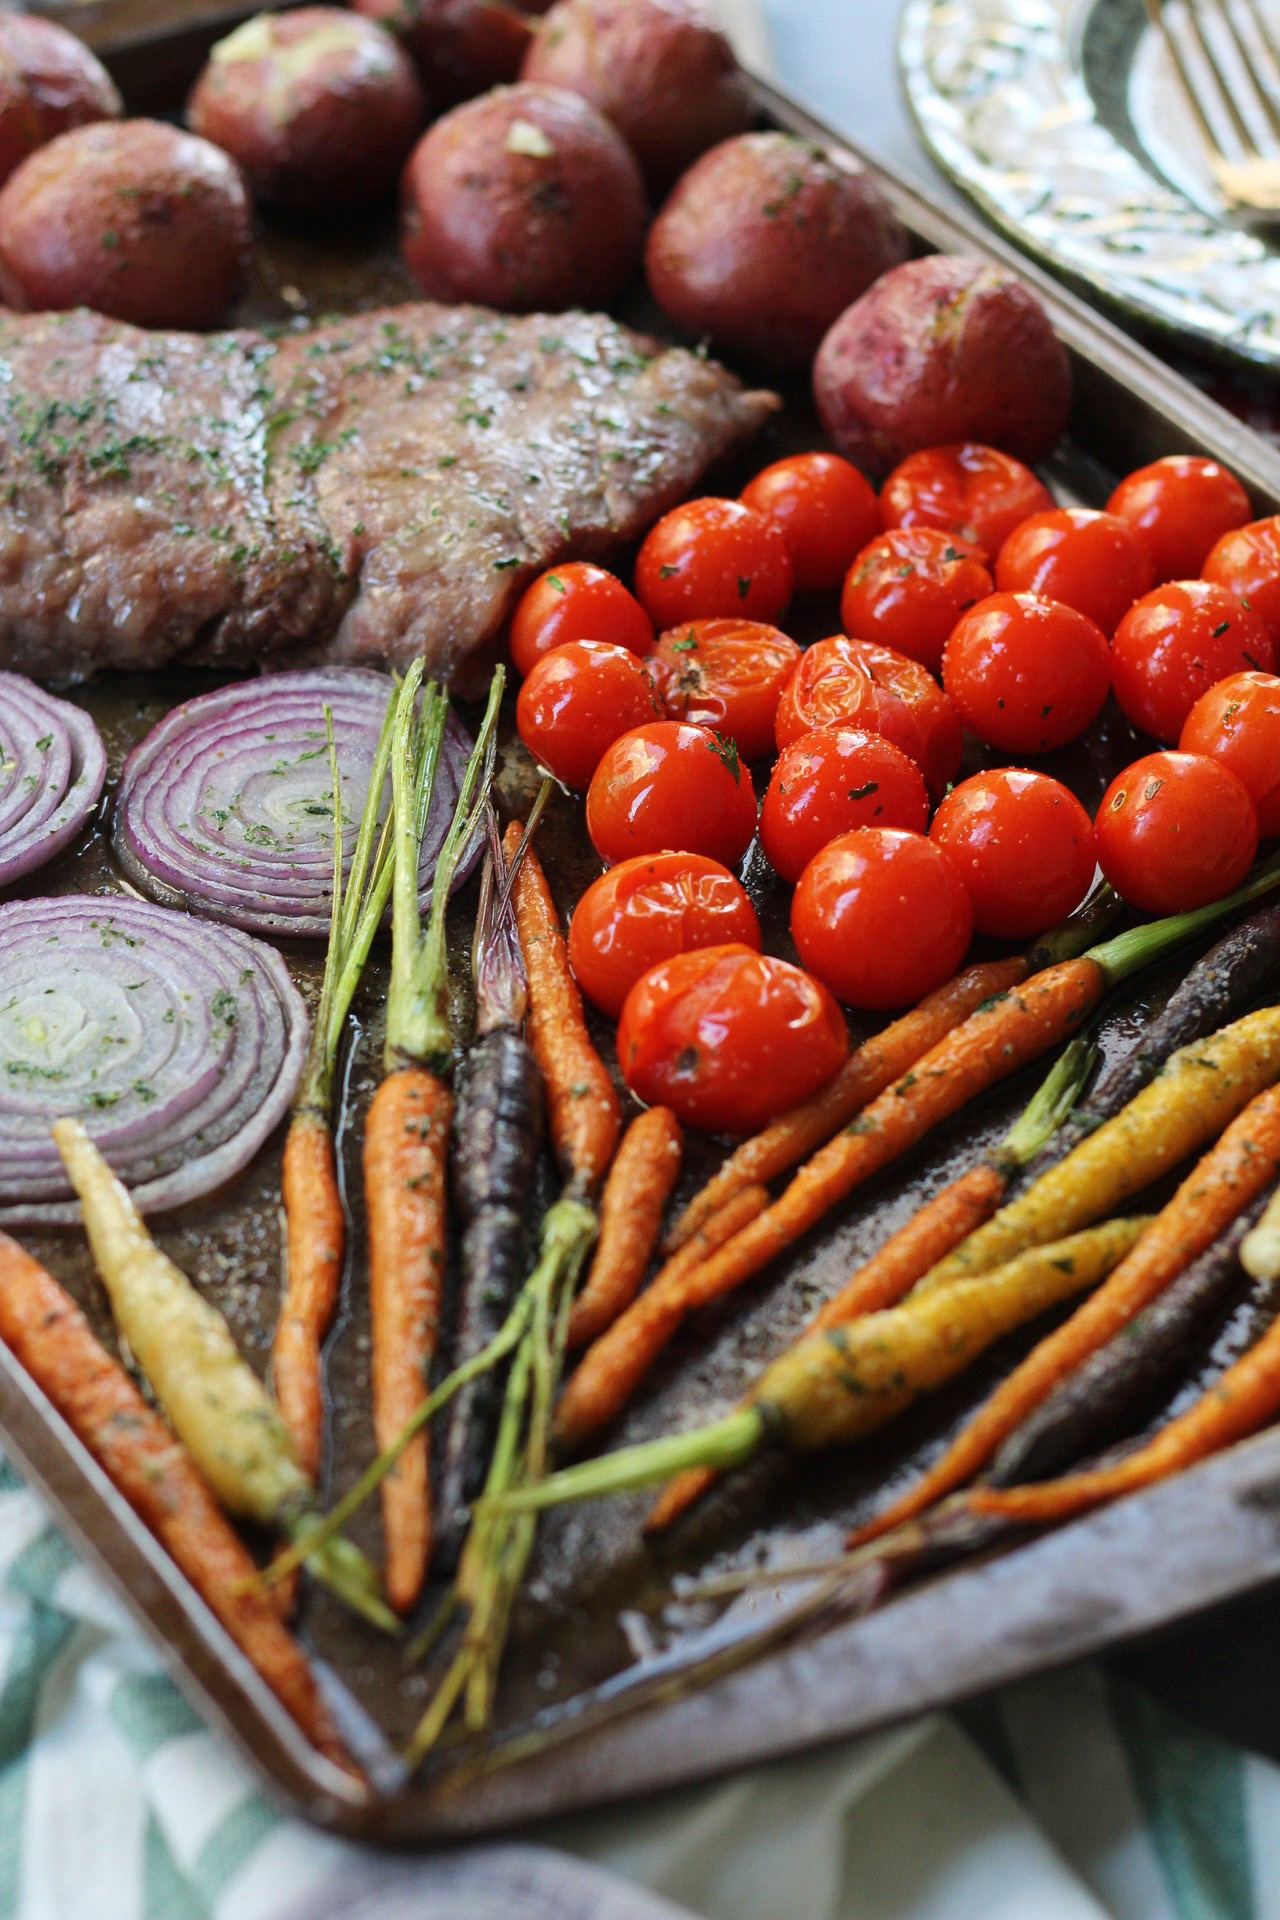 steak and veggies sheet pan meal